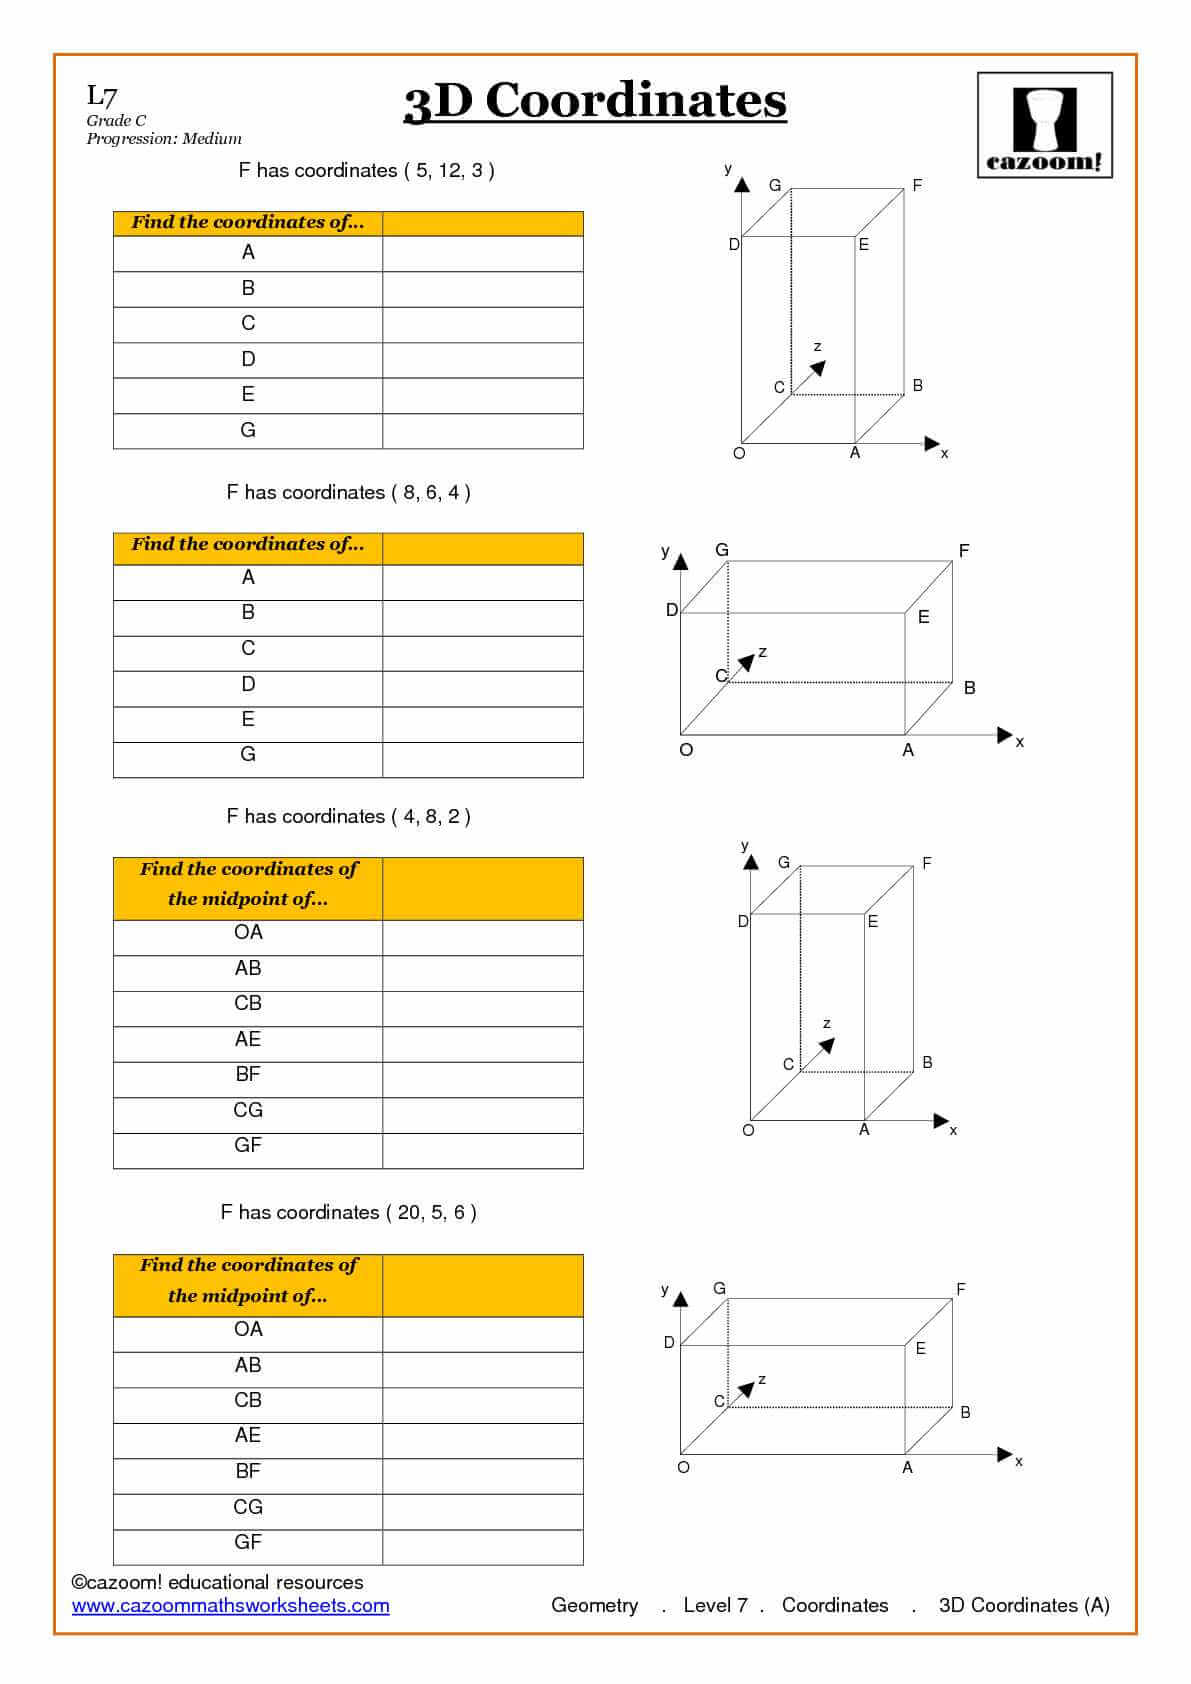 Coordinates Maths Worksheets